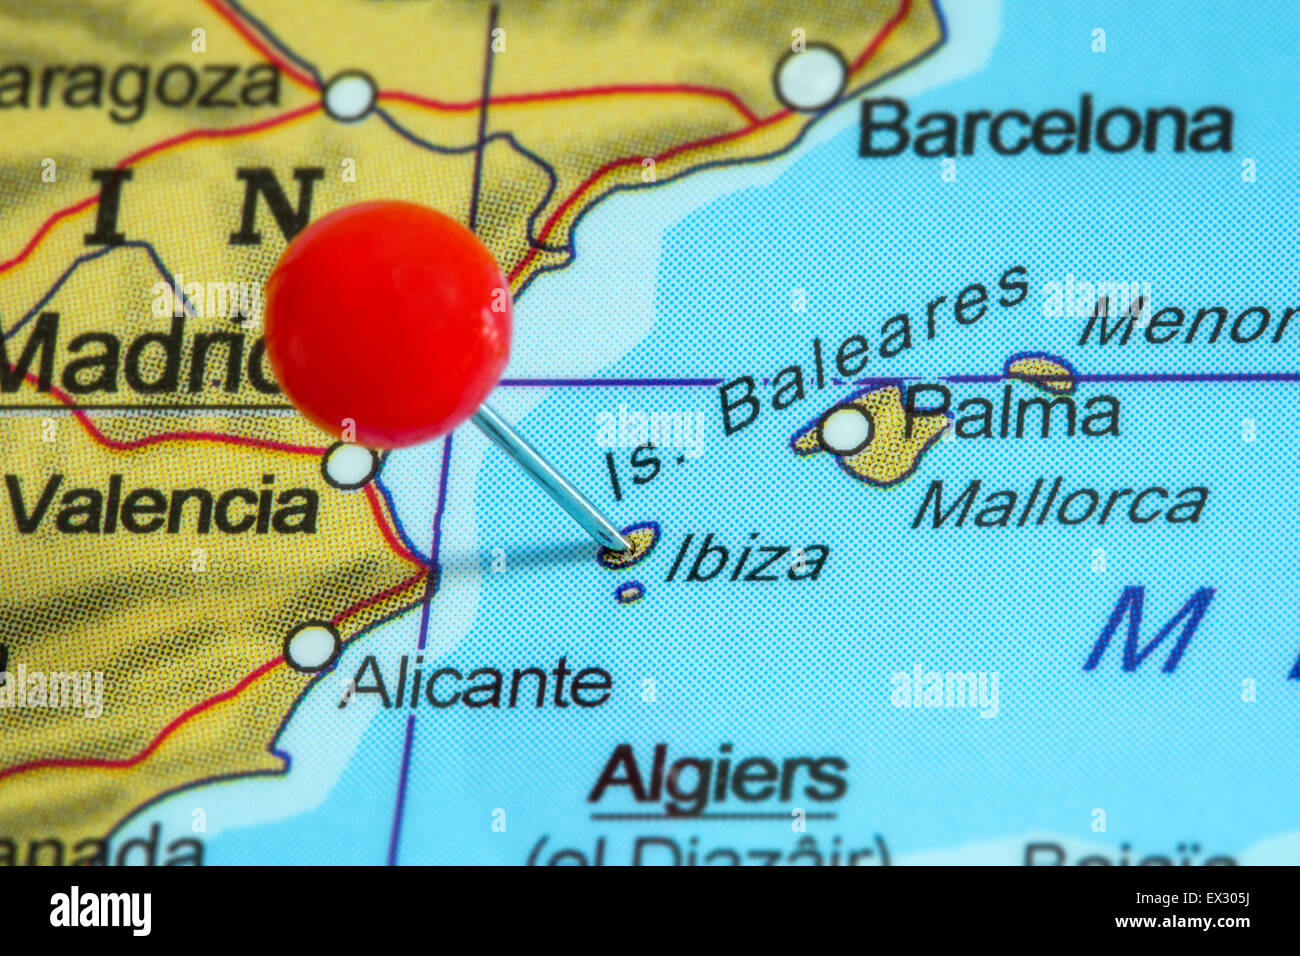 Ibiza Cartina Spagna.Ibiza Map Immagini E Fotos Stock Alamy